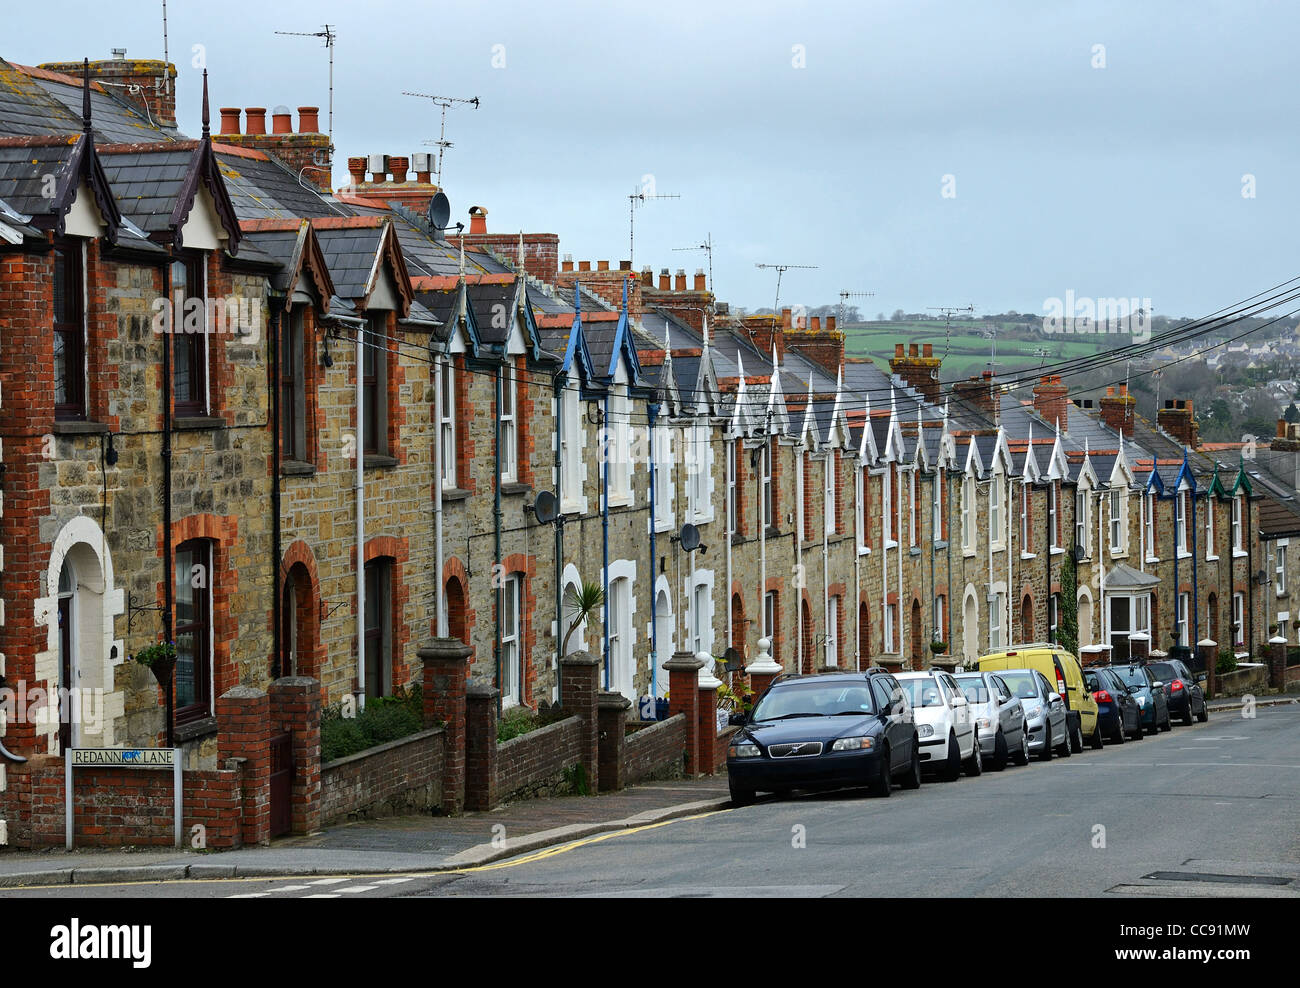 a row of terraced houses in Truro, Cornwall, UK - Stock Image